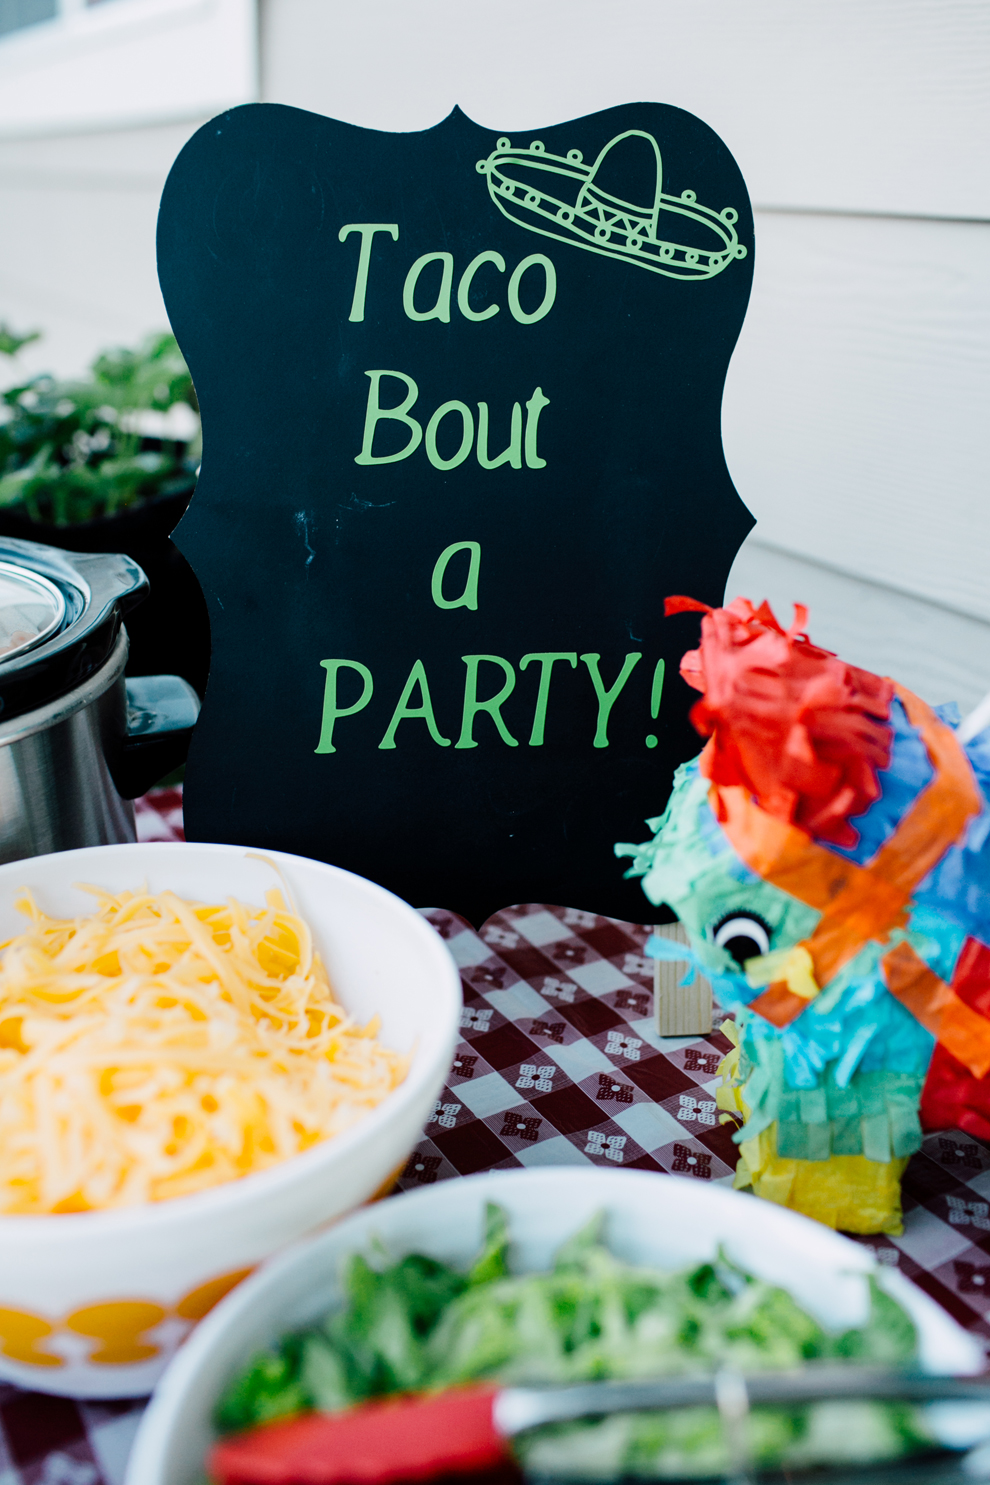 001-cinco-de-mayo-backyard-party-bellingham-taco-bar-katheryn-moran.jpg